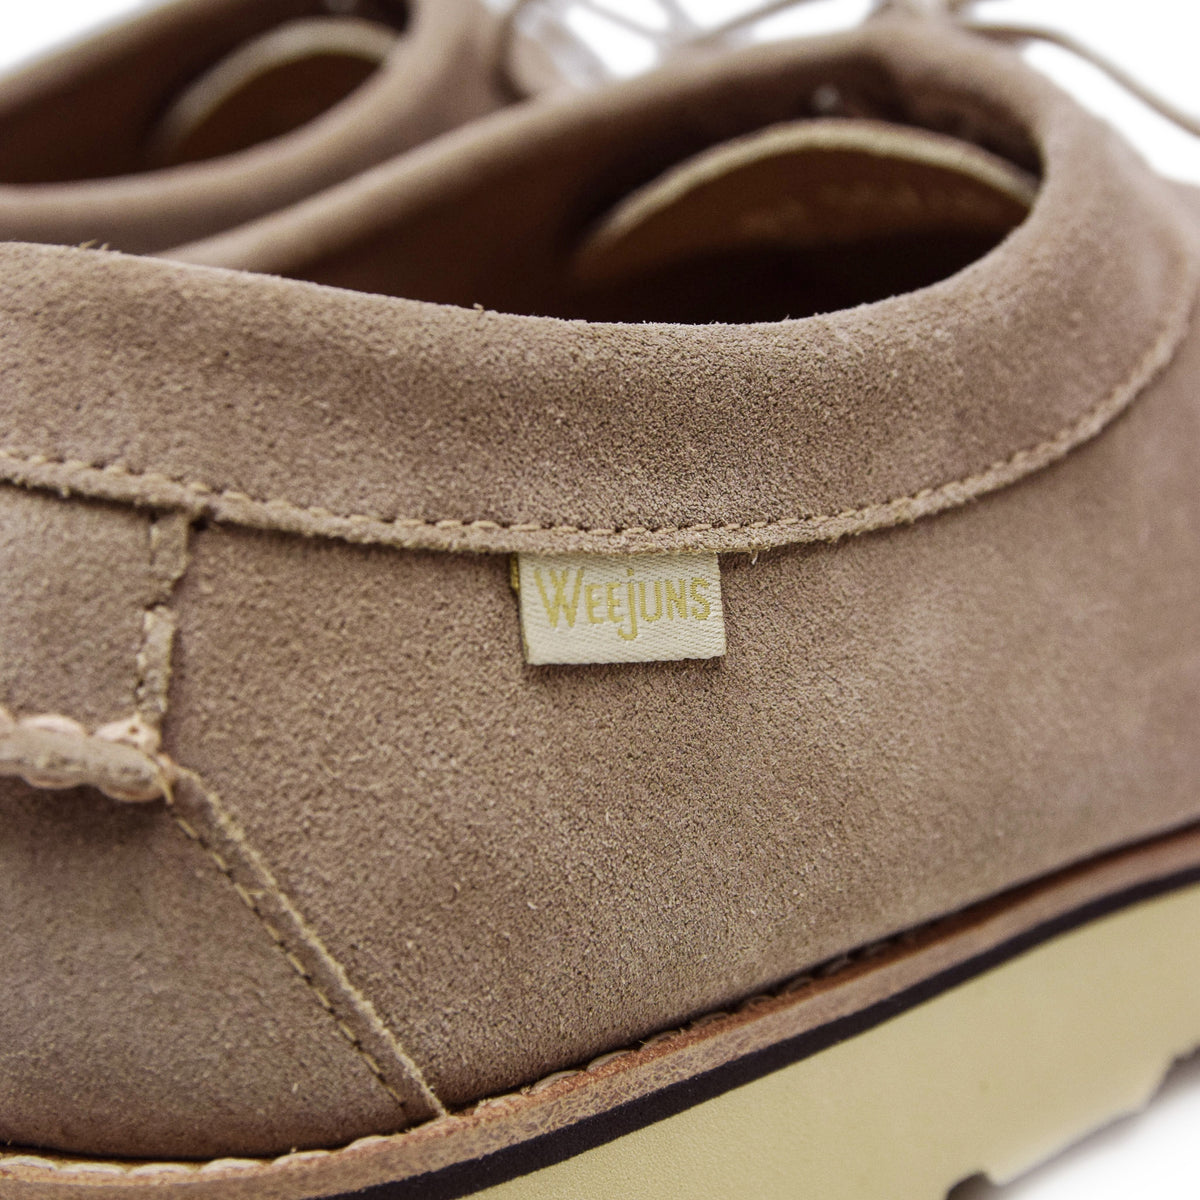 G.H. Bass & Co. Weejun Wedge Tie Reverso Earth Suede tab